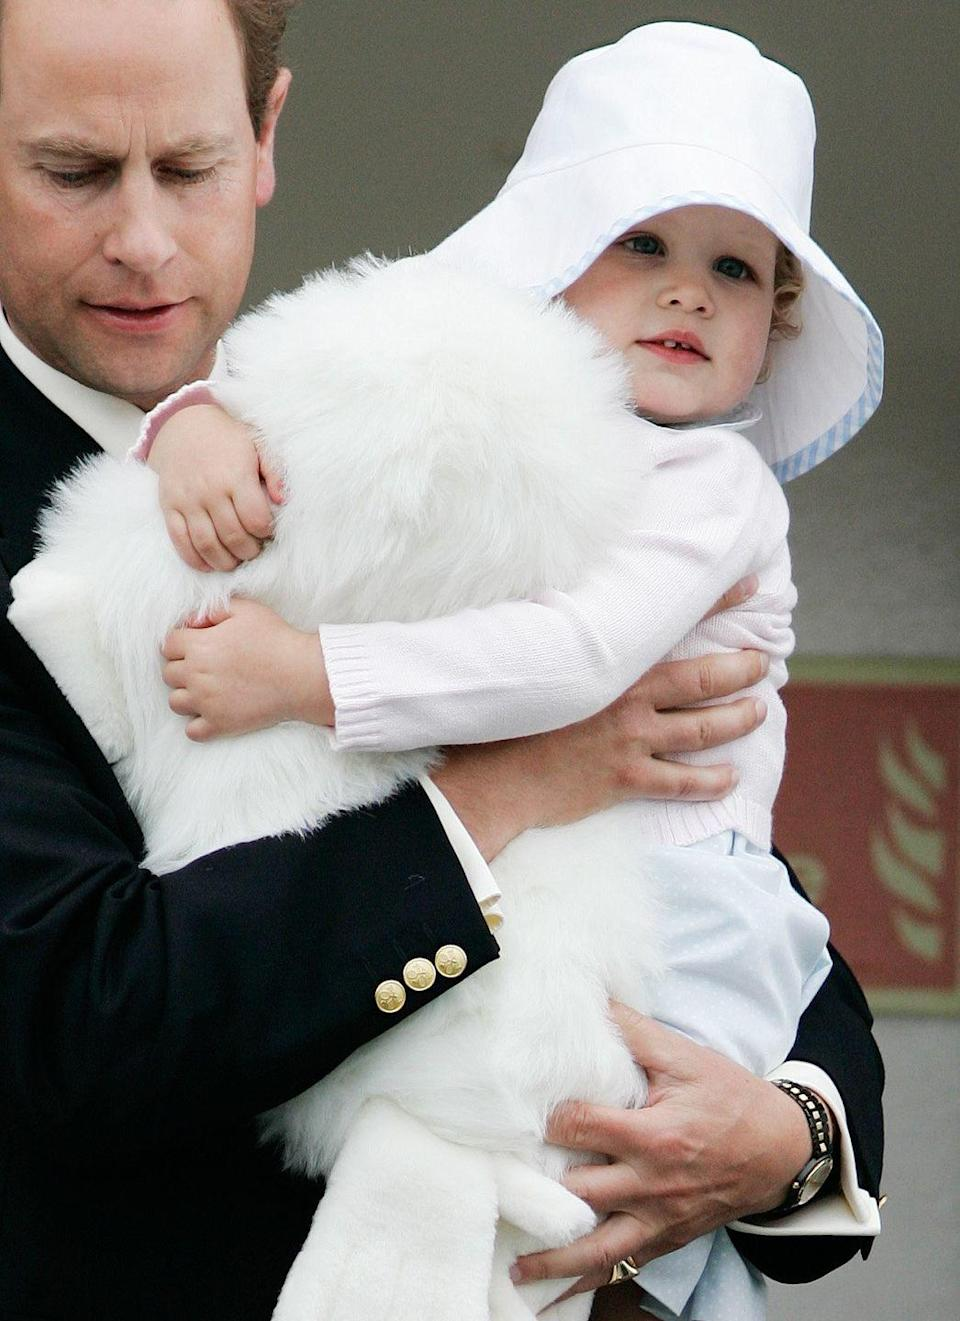 """<p>Lady Louise, 2, hugs a fluffy pillow while arriving in Scotland with her father, Prince Edward. In 2016, Louise's mother, Sophie, the Countess of Wessex, told the BBC that it took some time for Louise to realize that her grandmother was the queen. """"Well, for Louise, actually, it was much more of a shock to the system. It was only when she was coming home from school and saying, 'Mummy, people keep on telling me that grandma is the queen.' And I asked her, 'Yes, how does that make you feel? And she said, 'I don't understand'"""" (via <em><a href=""""http://people.com/royals/lady-louise-windsor-didnt-realize-her-grandmother-is-the-queen/"""" rel=""""nofollow noopener"""" target=""""_blank"""" data-ylk=""""slk:PEOPLE"""" class=""""link rapid-noclick-resp"""">PEOPLE</a></em>).</p>"""